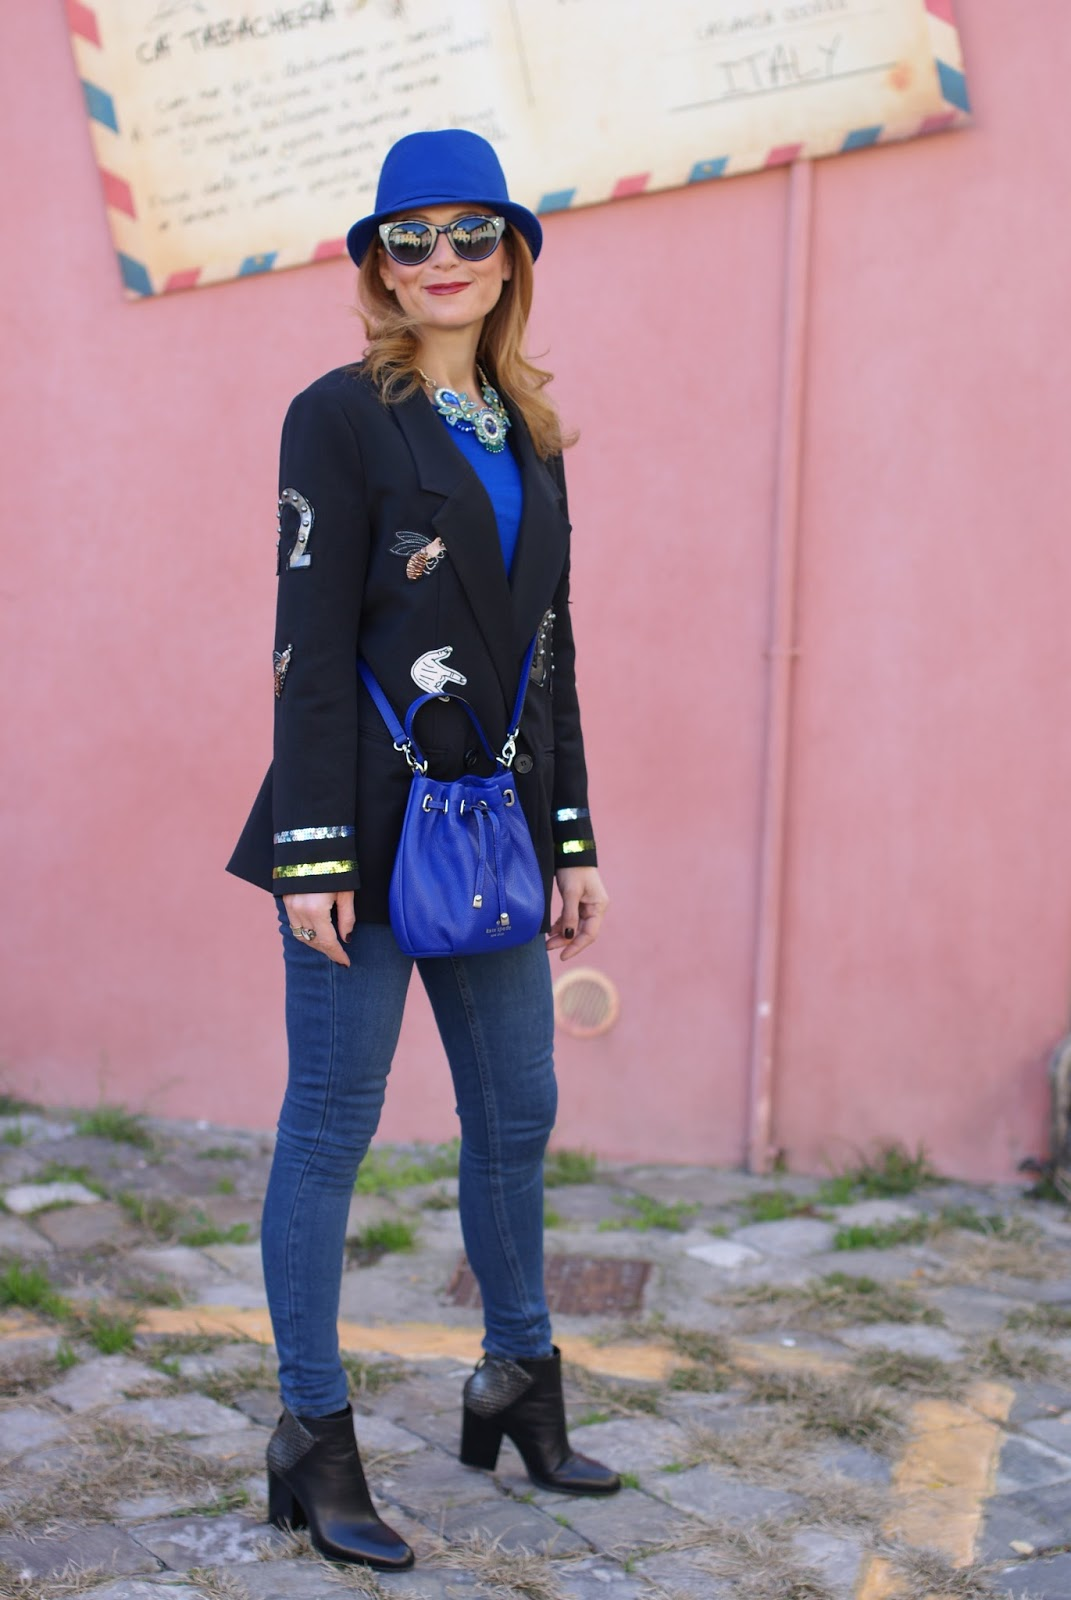 Vogos appliqued blazer with luck charms and Lorenzo Mari shoes on Fashion and Cookies fashion blog, fashion blogger style